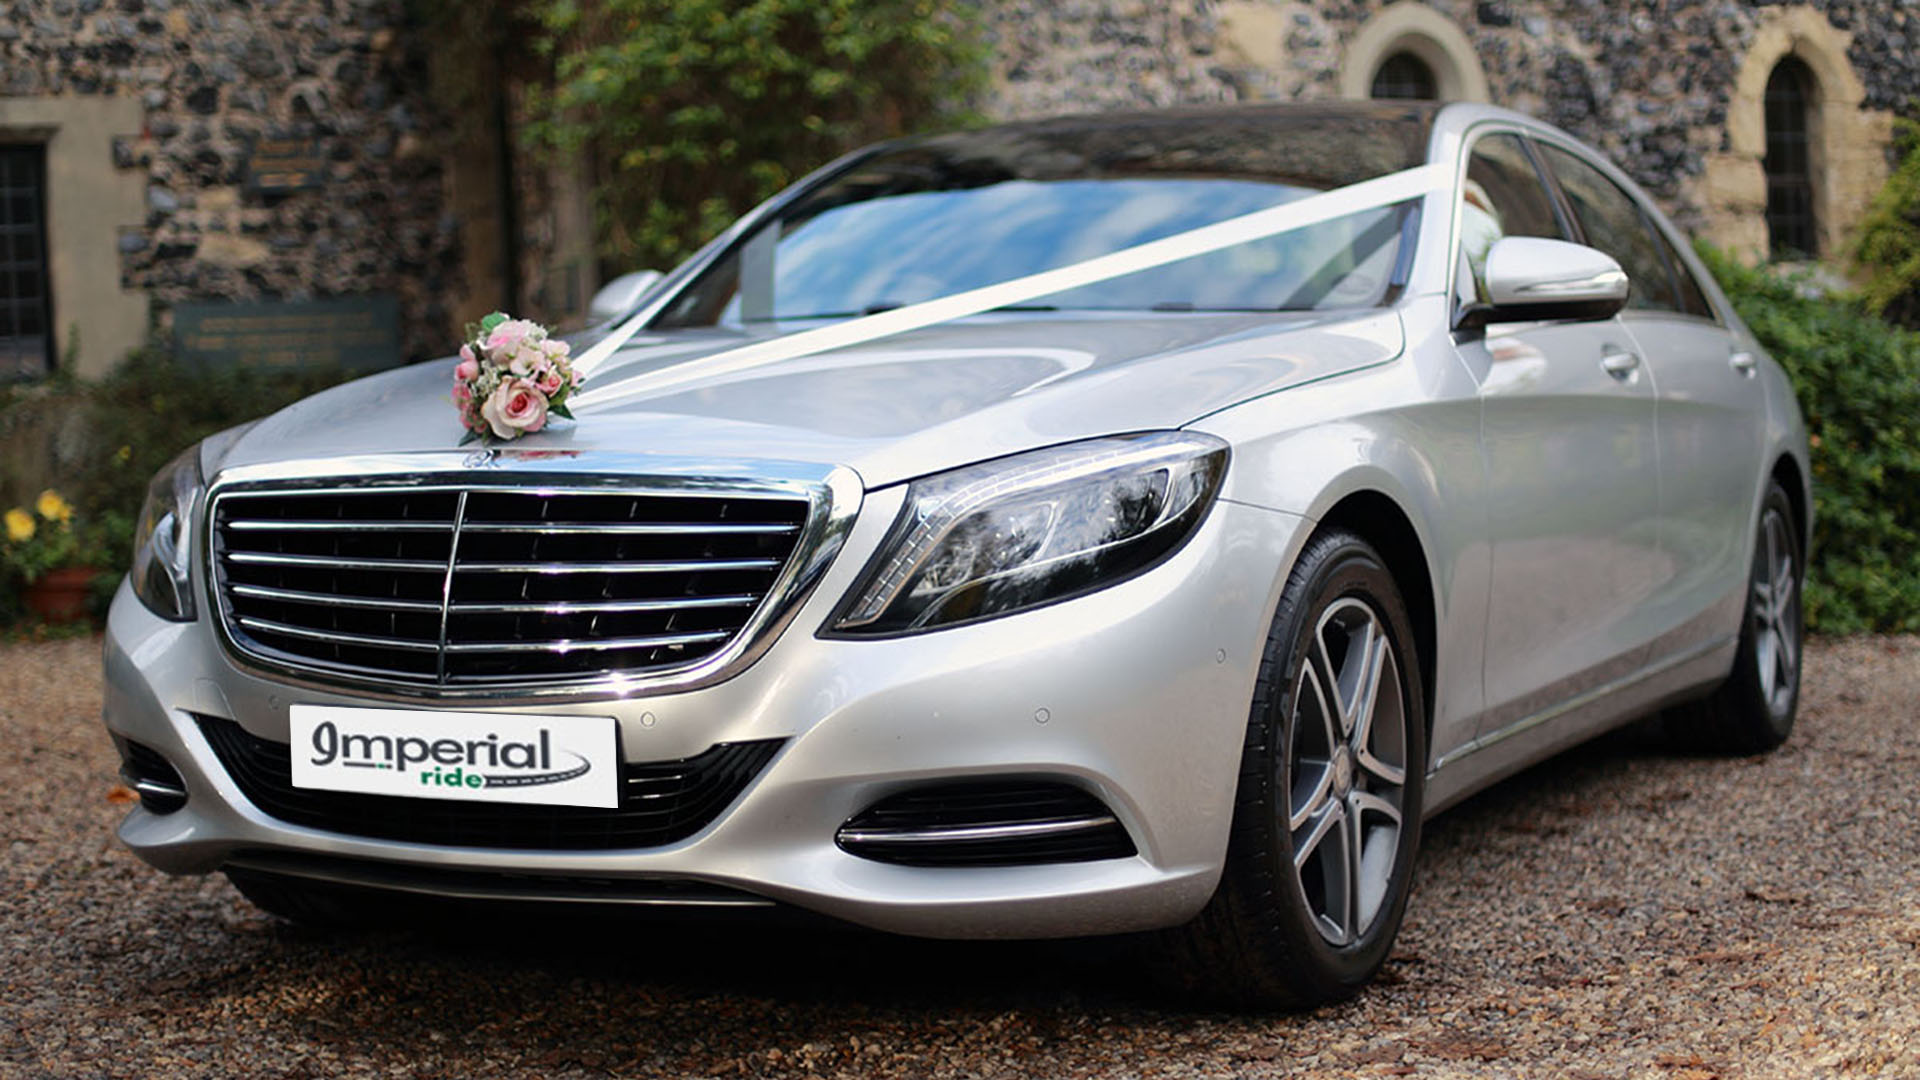 s-class-wedding-hire-in-lewisham